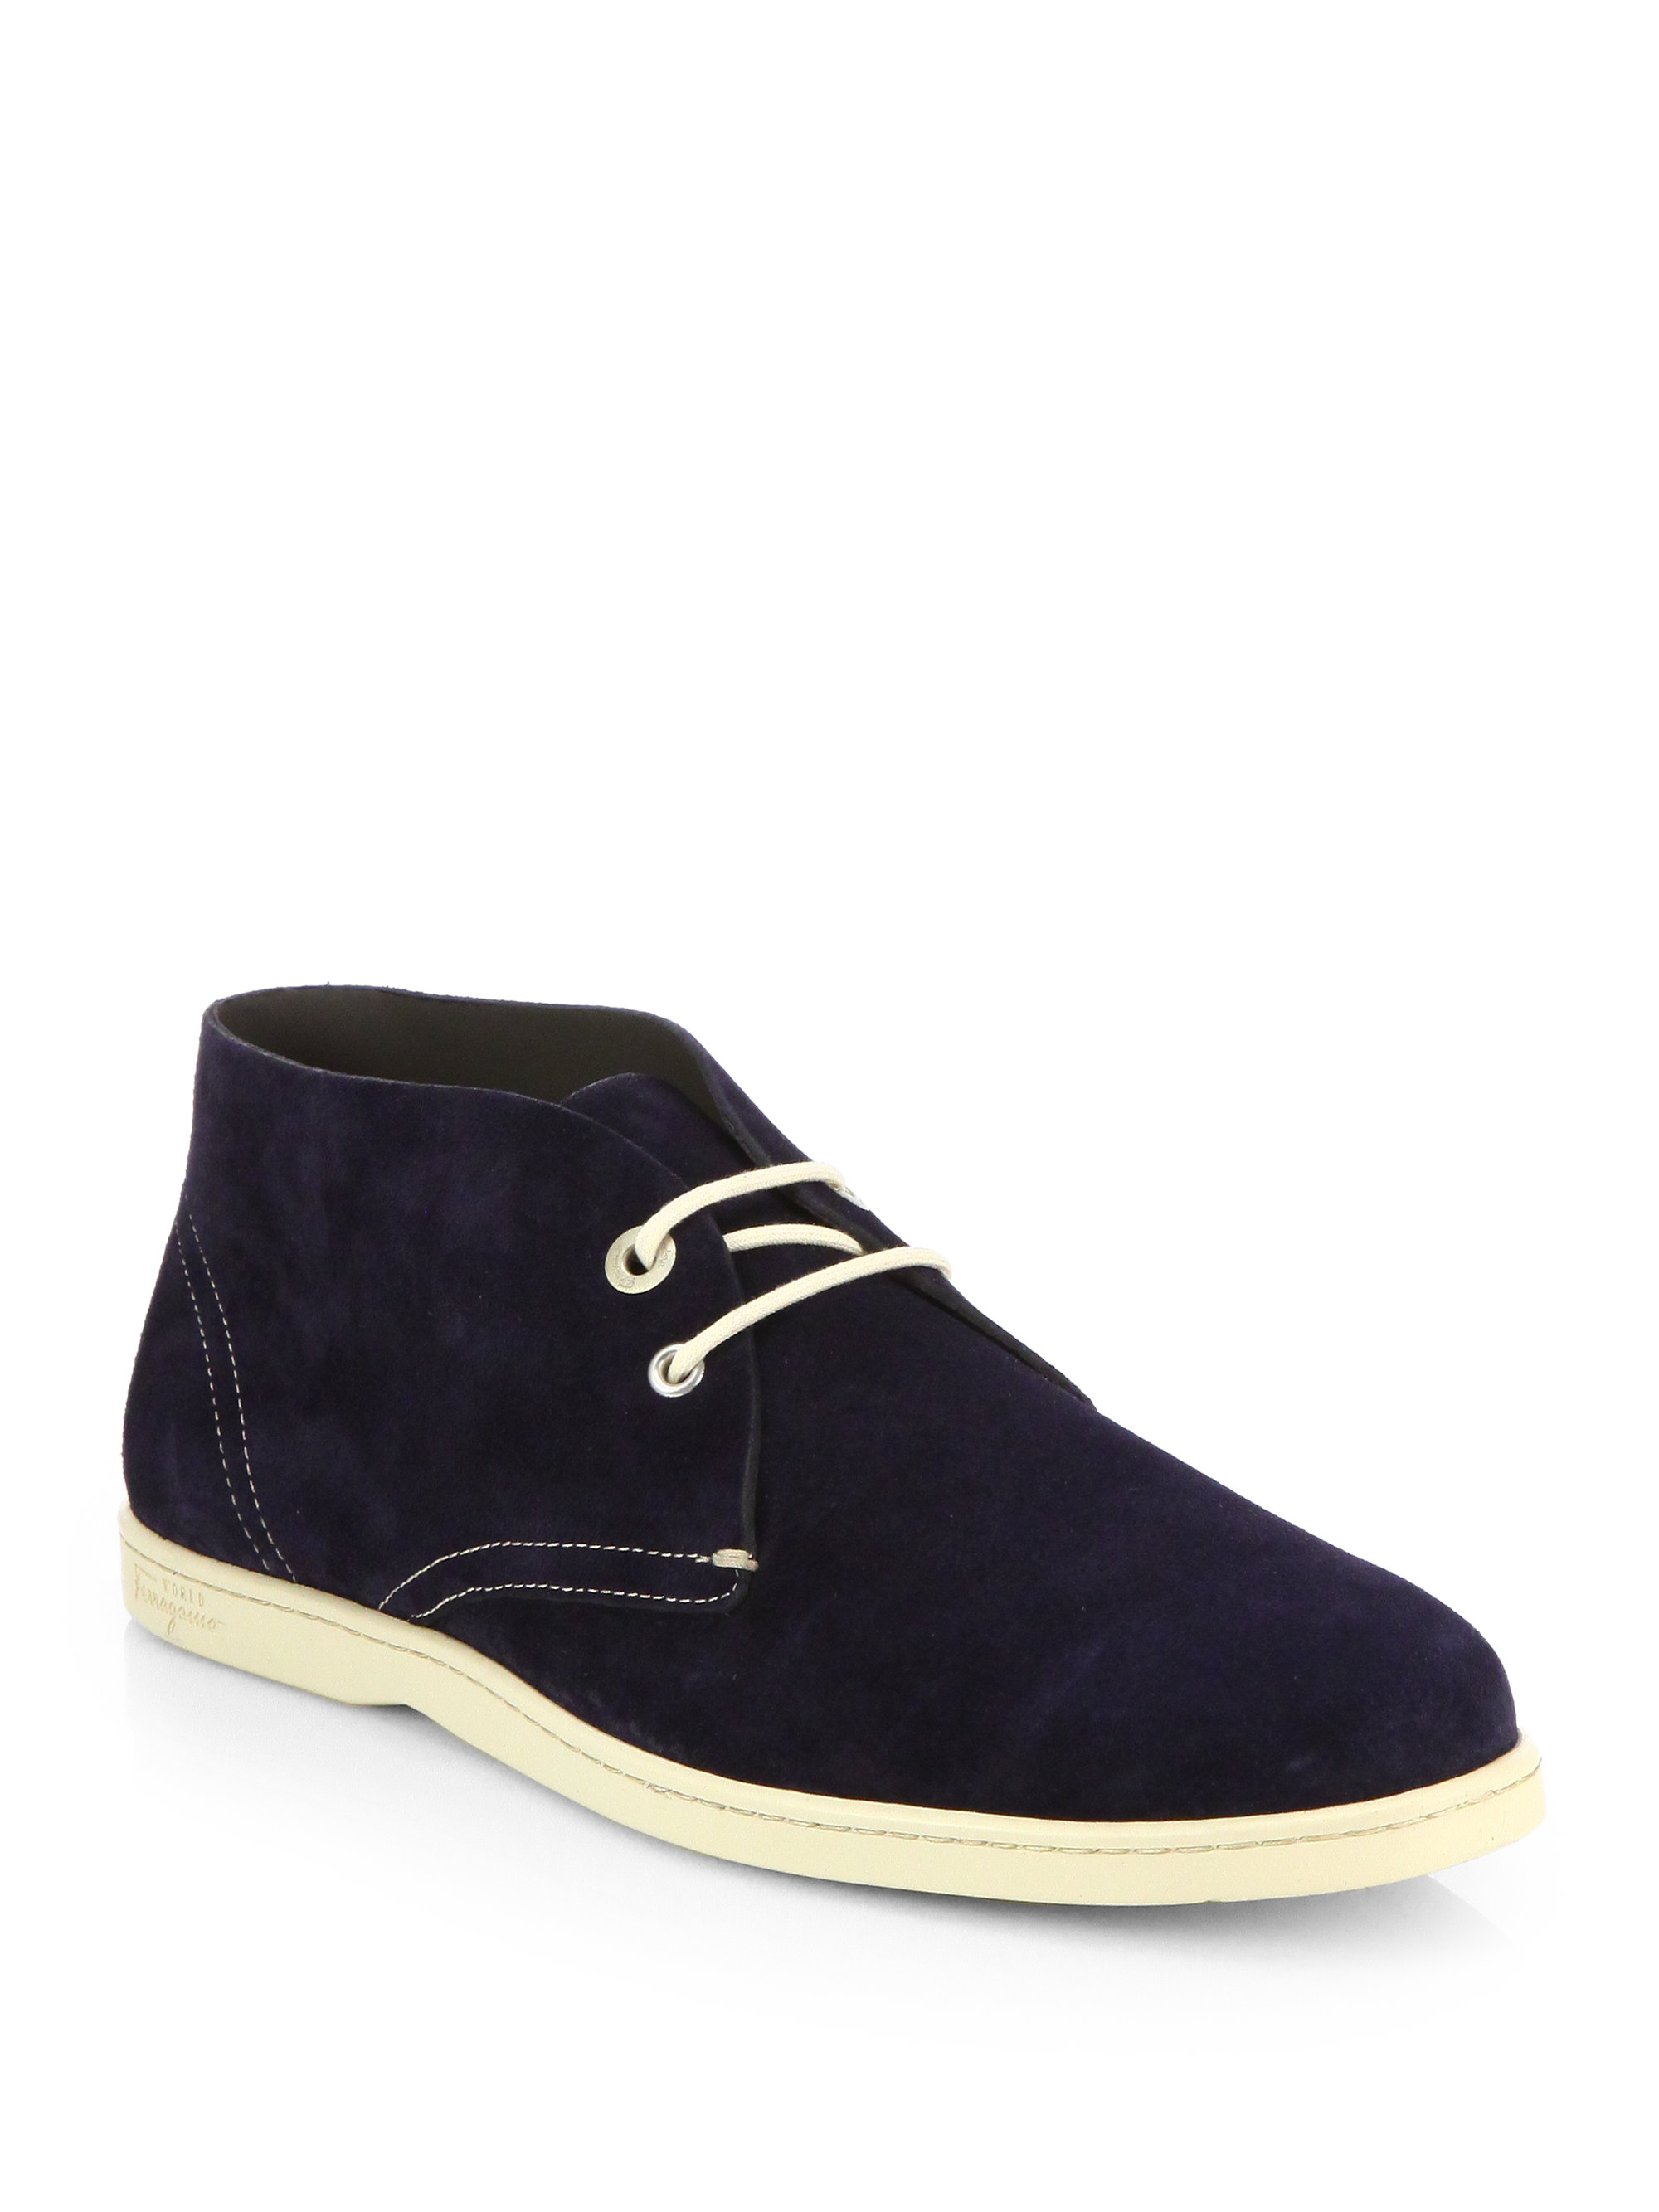 ferragamo suede chukka boots in blue for lyst